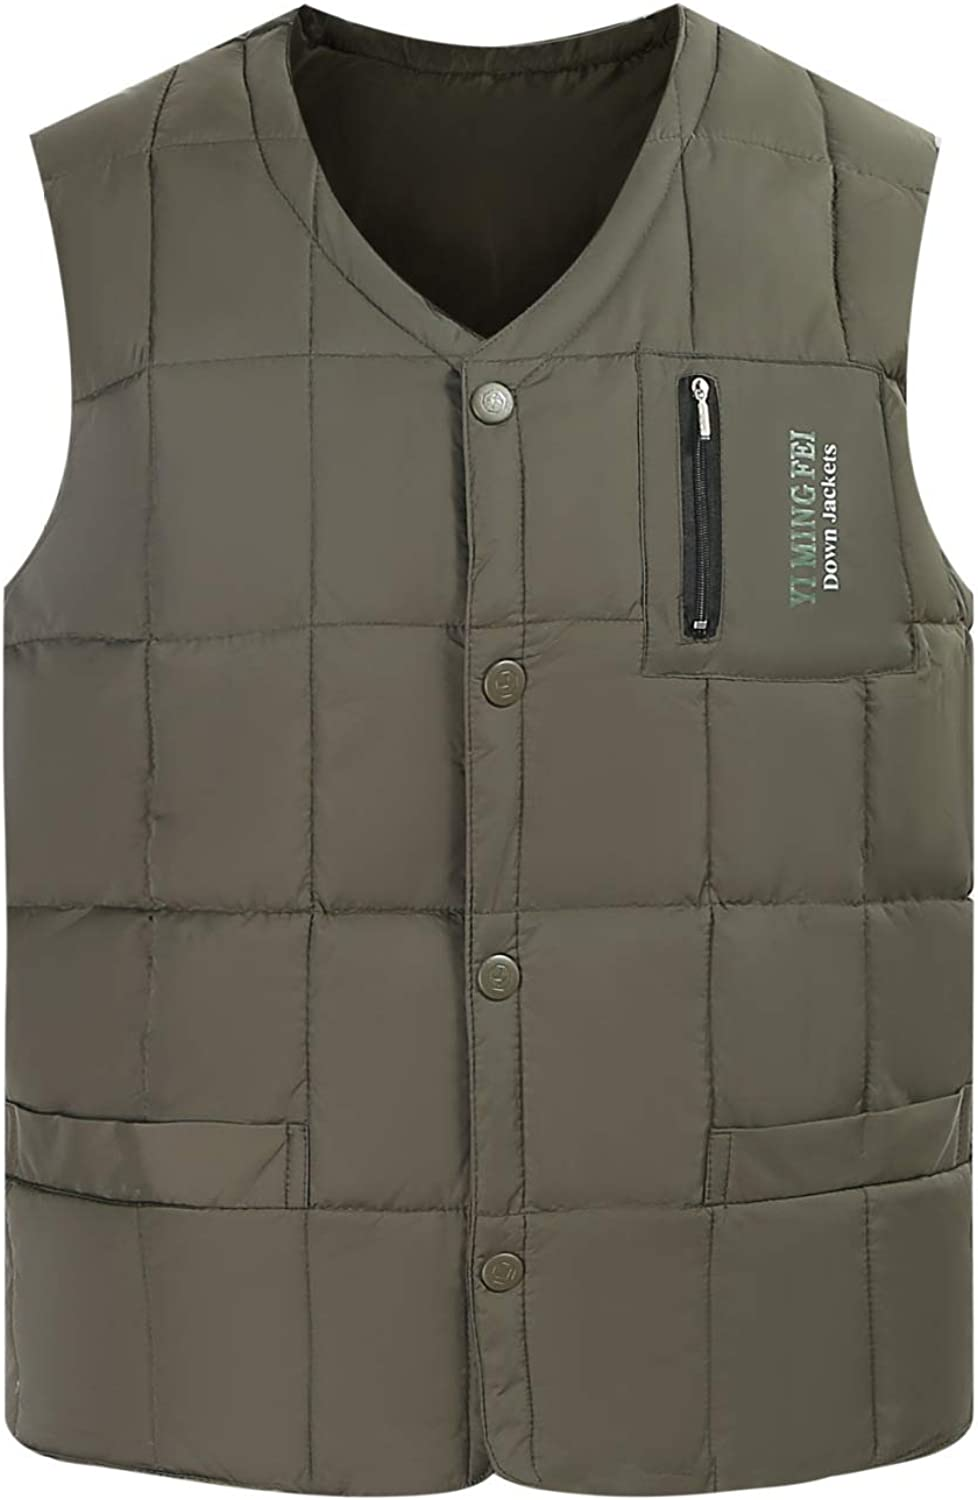 Men's Down Puffer Quilted Vest Outerwear Water-Resistant Polyester Lightweight Sleeveless Jacket for Outdoor Travel